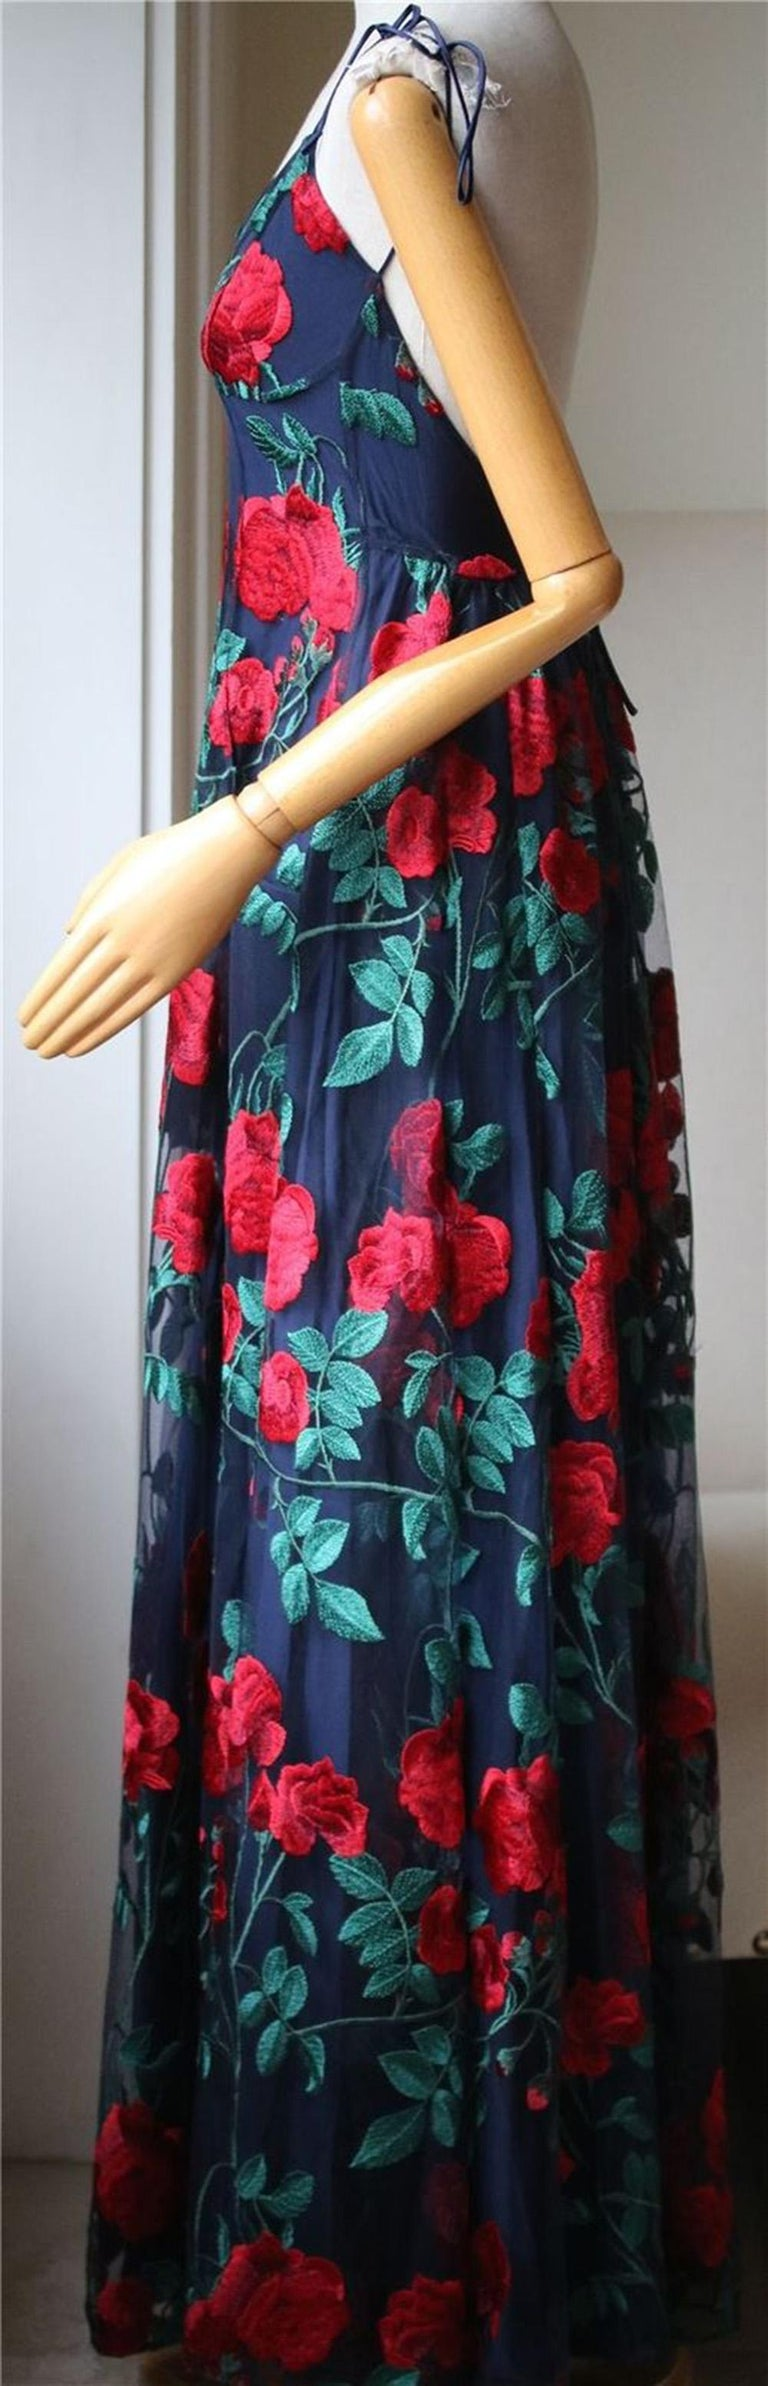 Adam Selman Rose Embroidered Tulle Gown  In Excellent Condition For Sale In London, GB